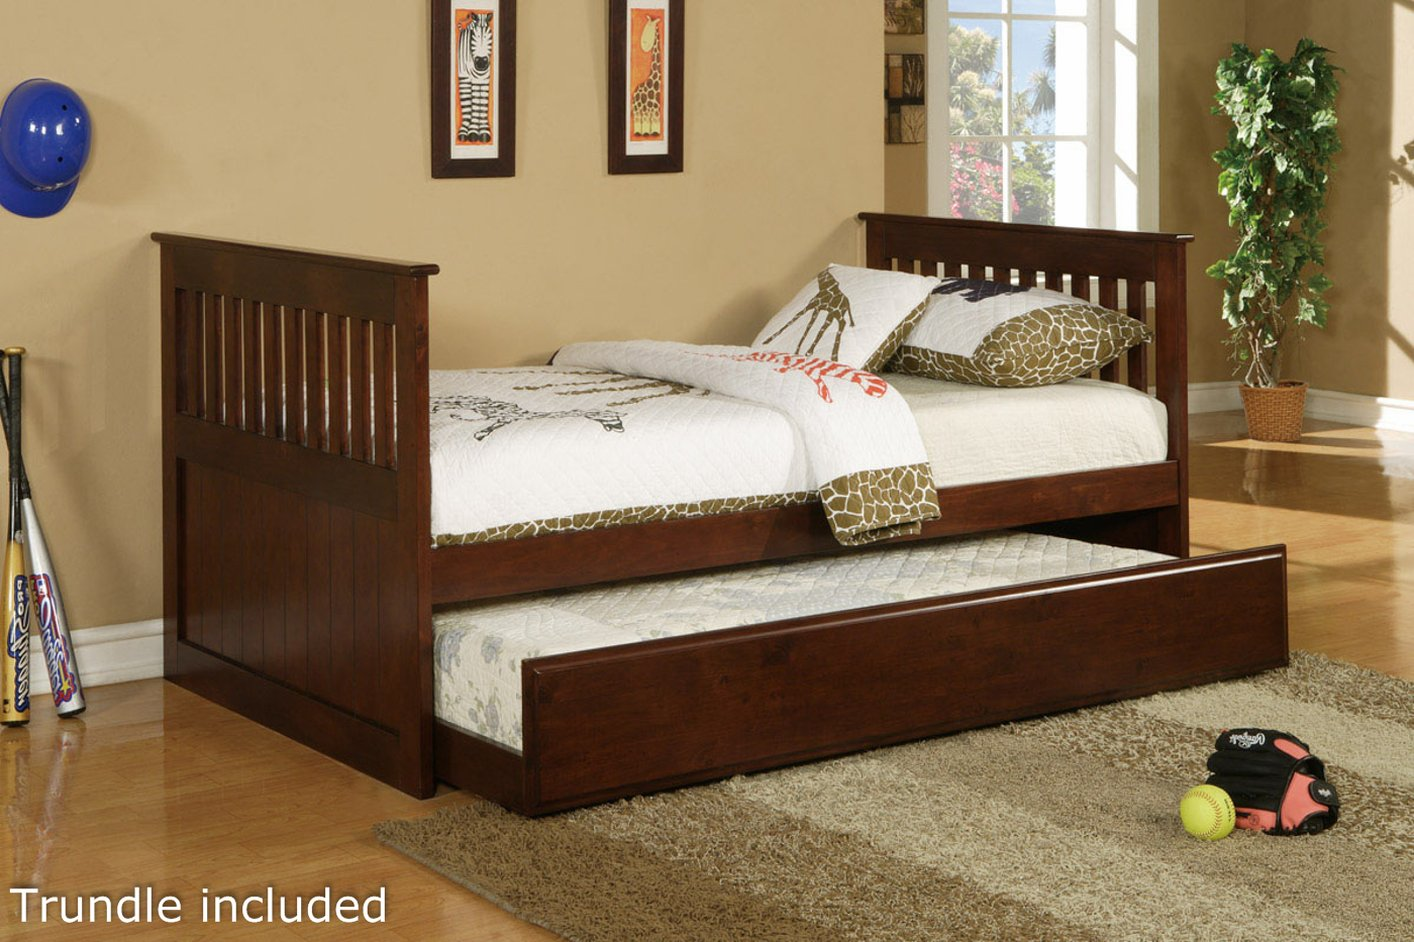 brown wood twin size bed - Twin Bed With Mattress Included